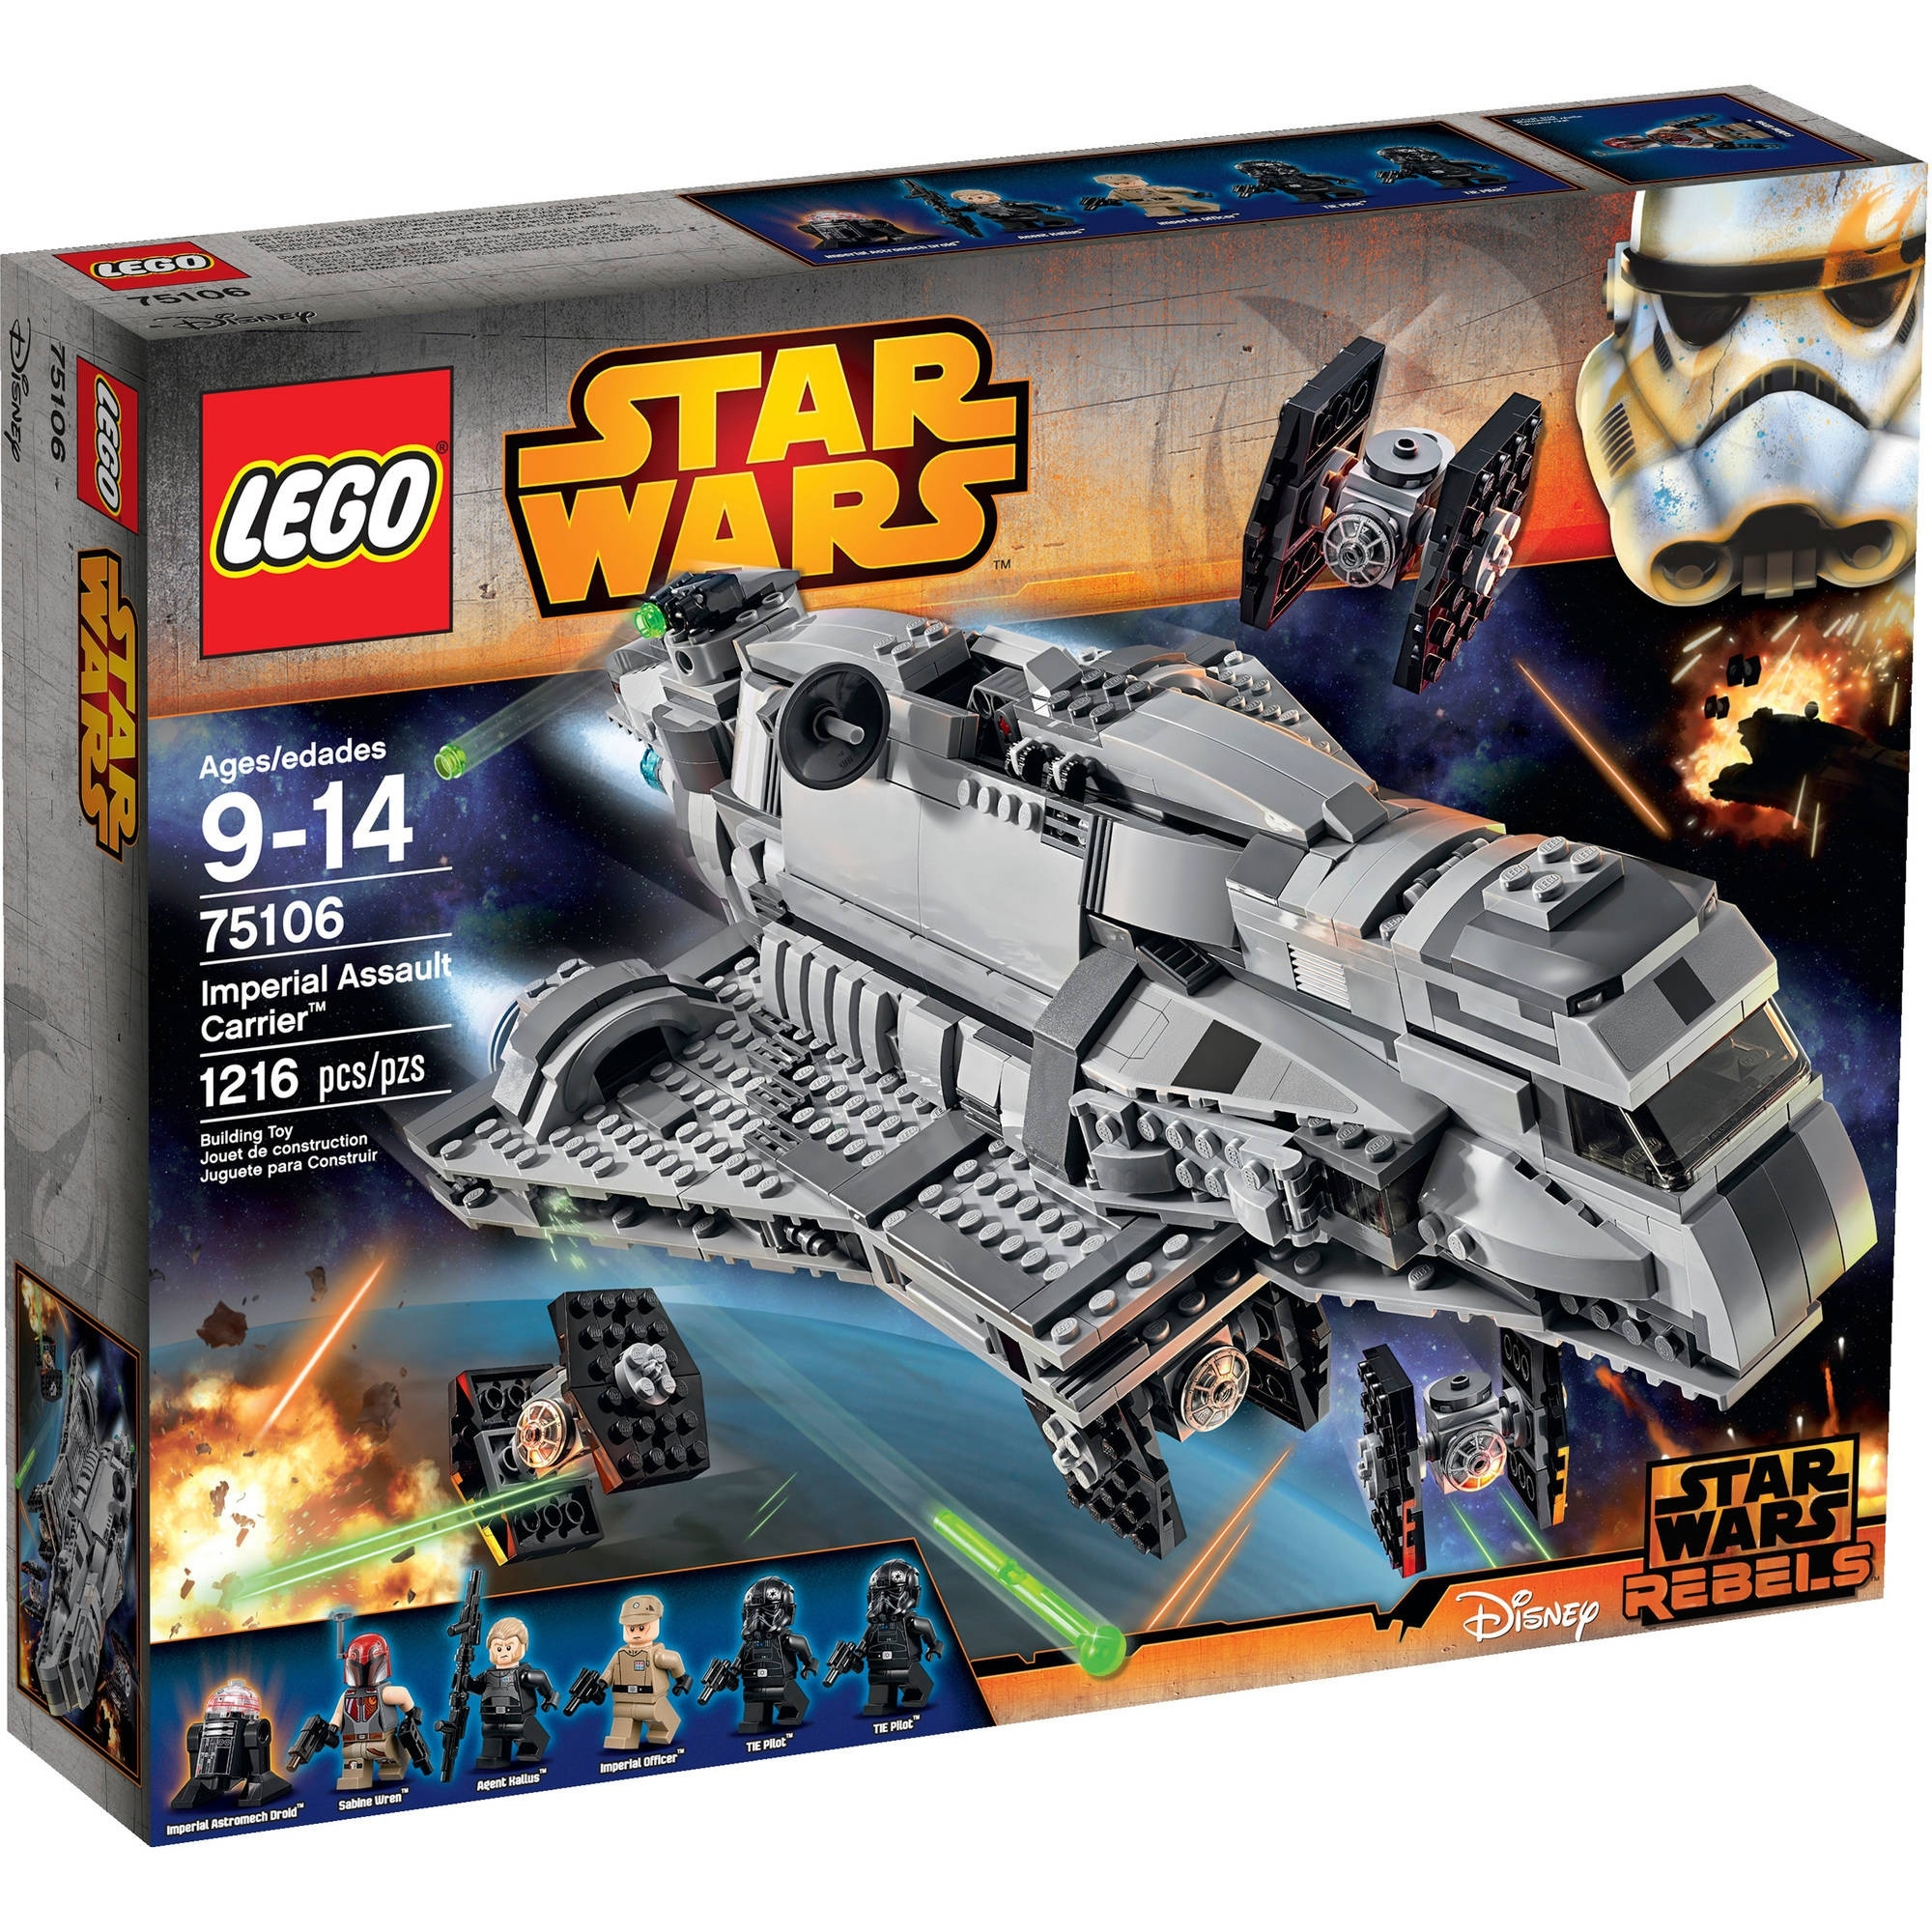 Lego Star Warsimperial Assault Carrier - Walmart  Star Wars Lego Sets Code